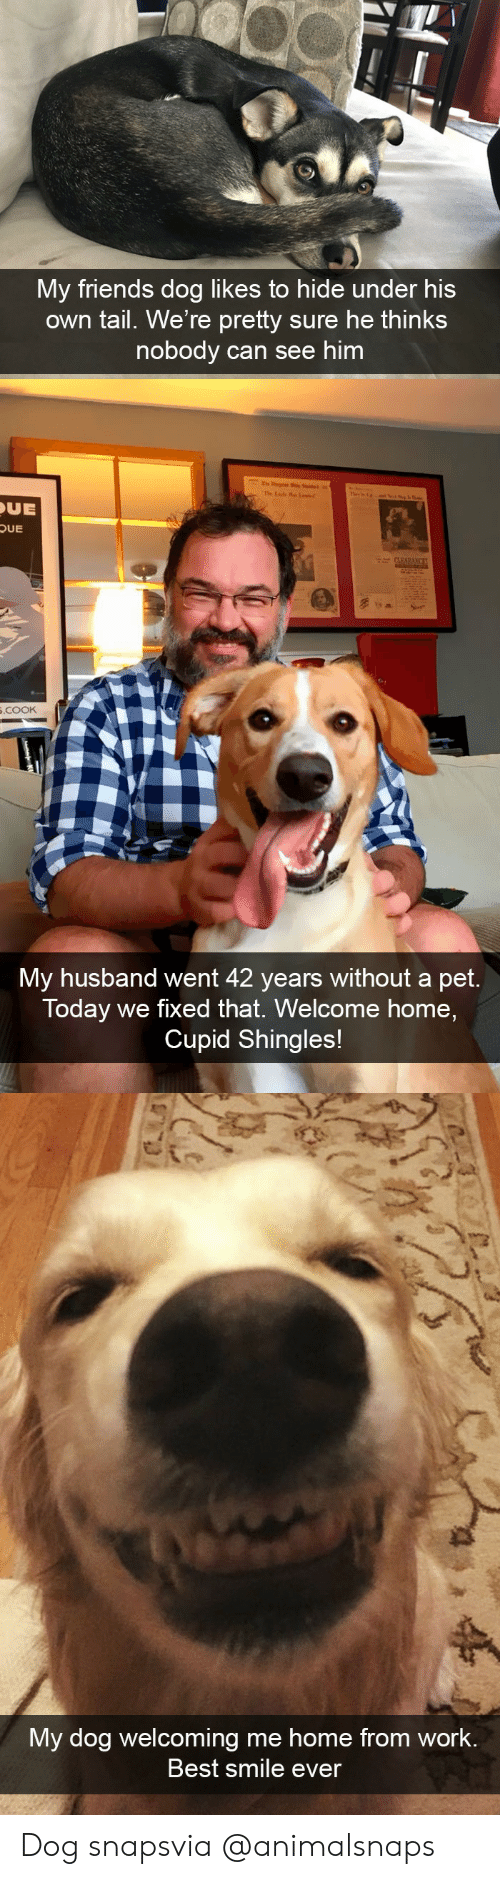 Friends, Target, and Tumblr: My friends dog likes to hide under his  own tail. We're pretty sure he thinks  nobody can see him   UE  OUE  .cooK  My husband went 42 years without a pet.  Today we fixed that. Welcome home,  Cupid Shingles!   My dog welcoming me home from work  Best smile ever Dog snapsvia @animalsnaps